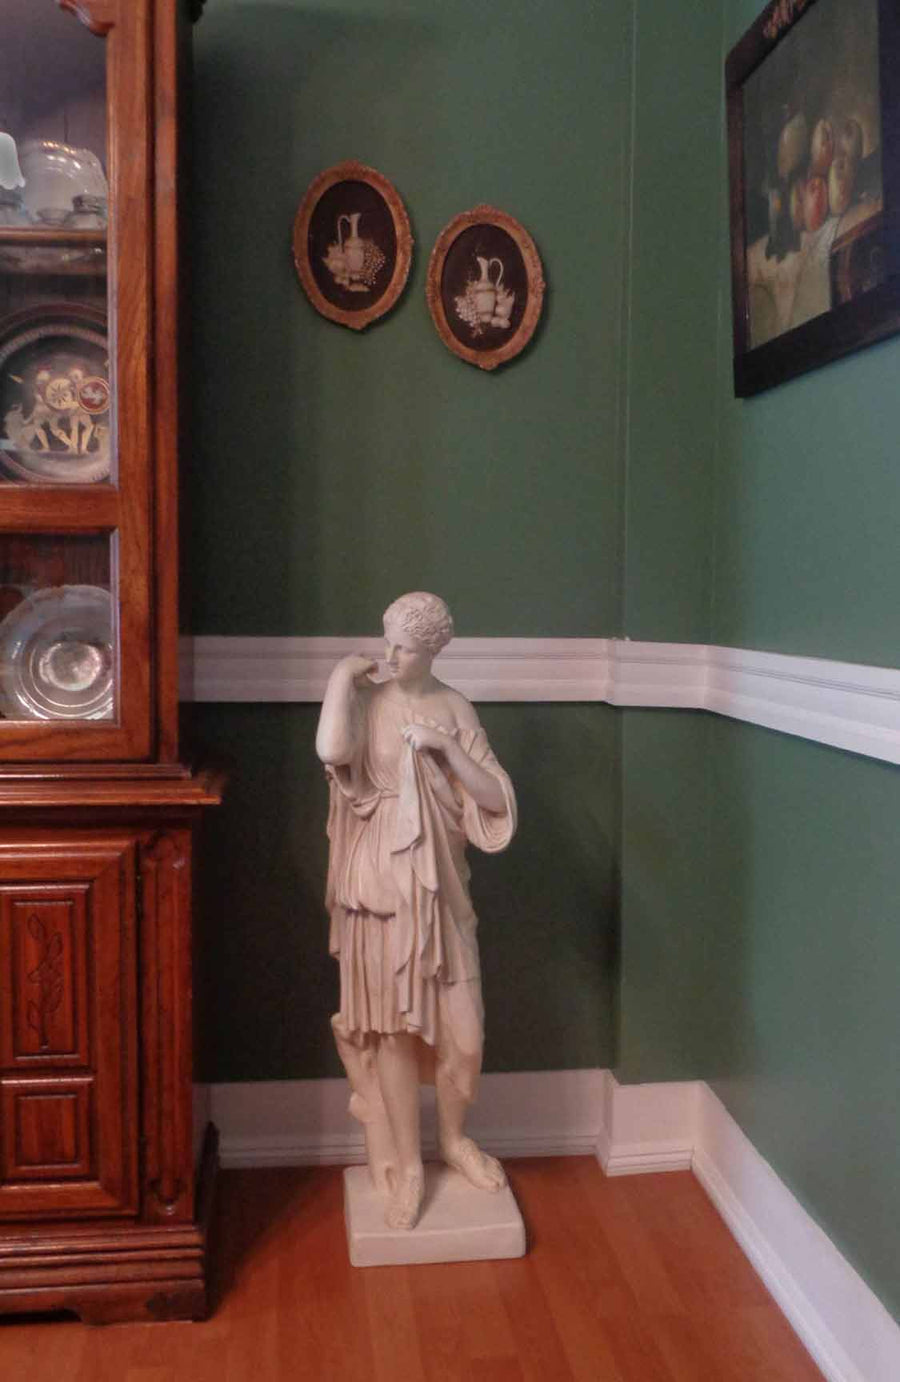 photo of plaster cast of female figure, namely the goddess Diana, with robes on a wood floor in front of a green wall with part of a hutch visible to the left and decorations in hutch and on walls